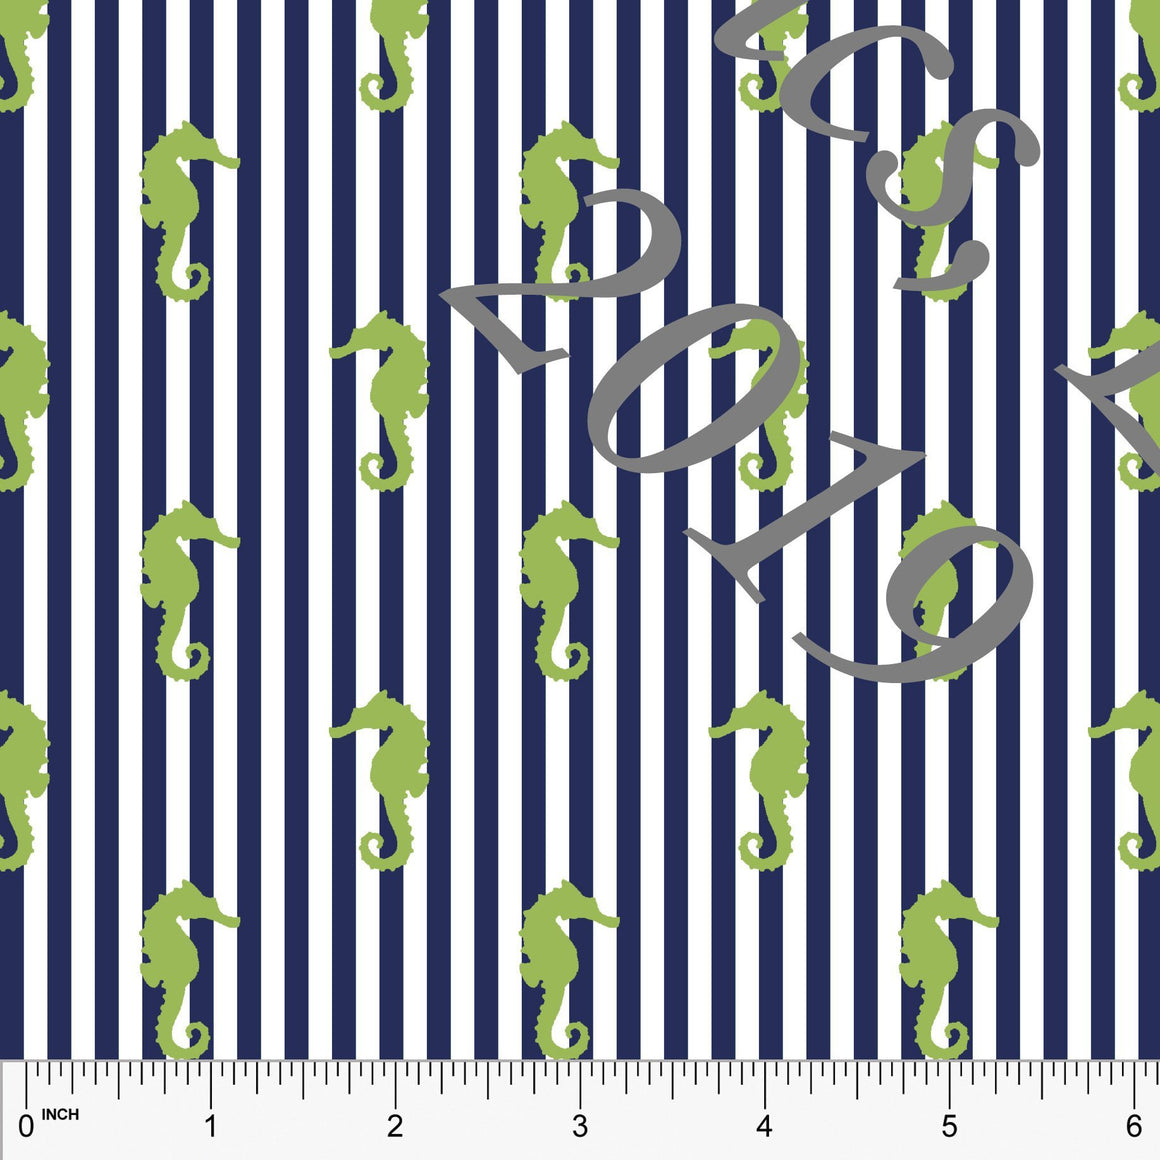 Navy Blue and Green Seahorse Vertical Pin Stripe 4 Way Stretch MATTE SWIM Knit Fabric, Club Fabrics